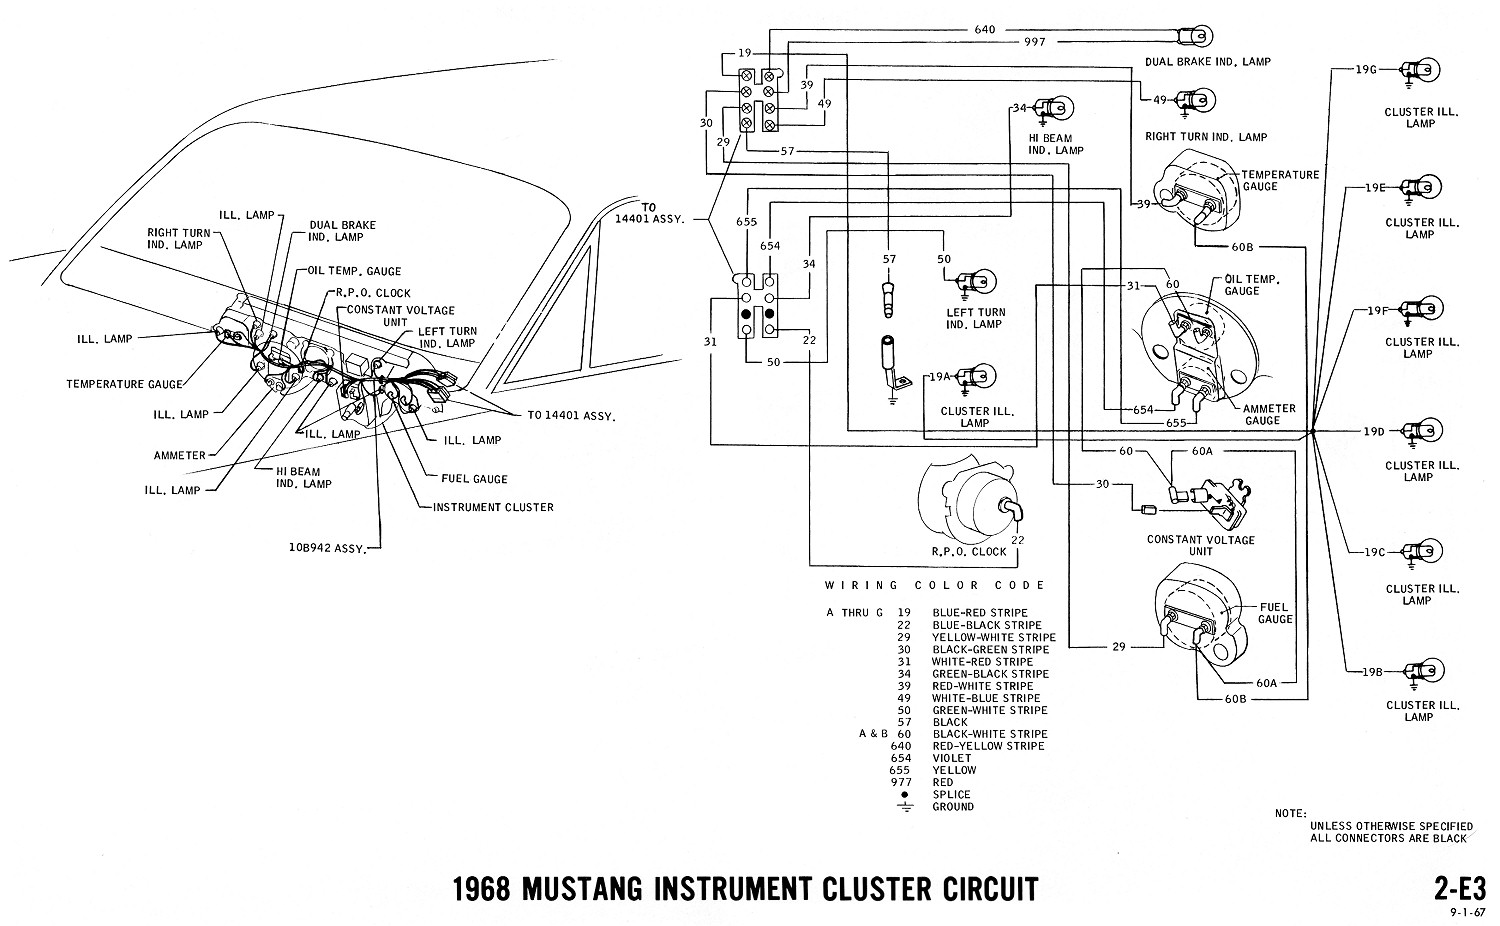 1968 Mustang Wiring Diagrams on 2005 chevy impala stereo wiring diagram